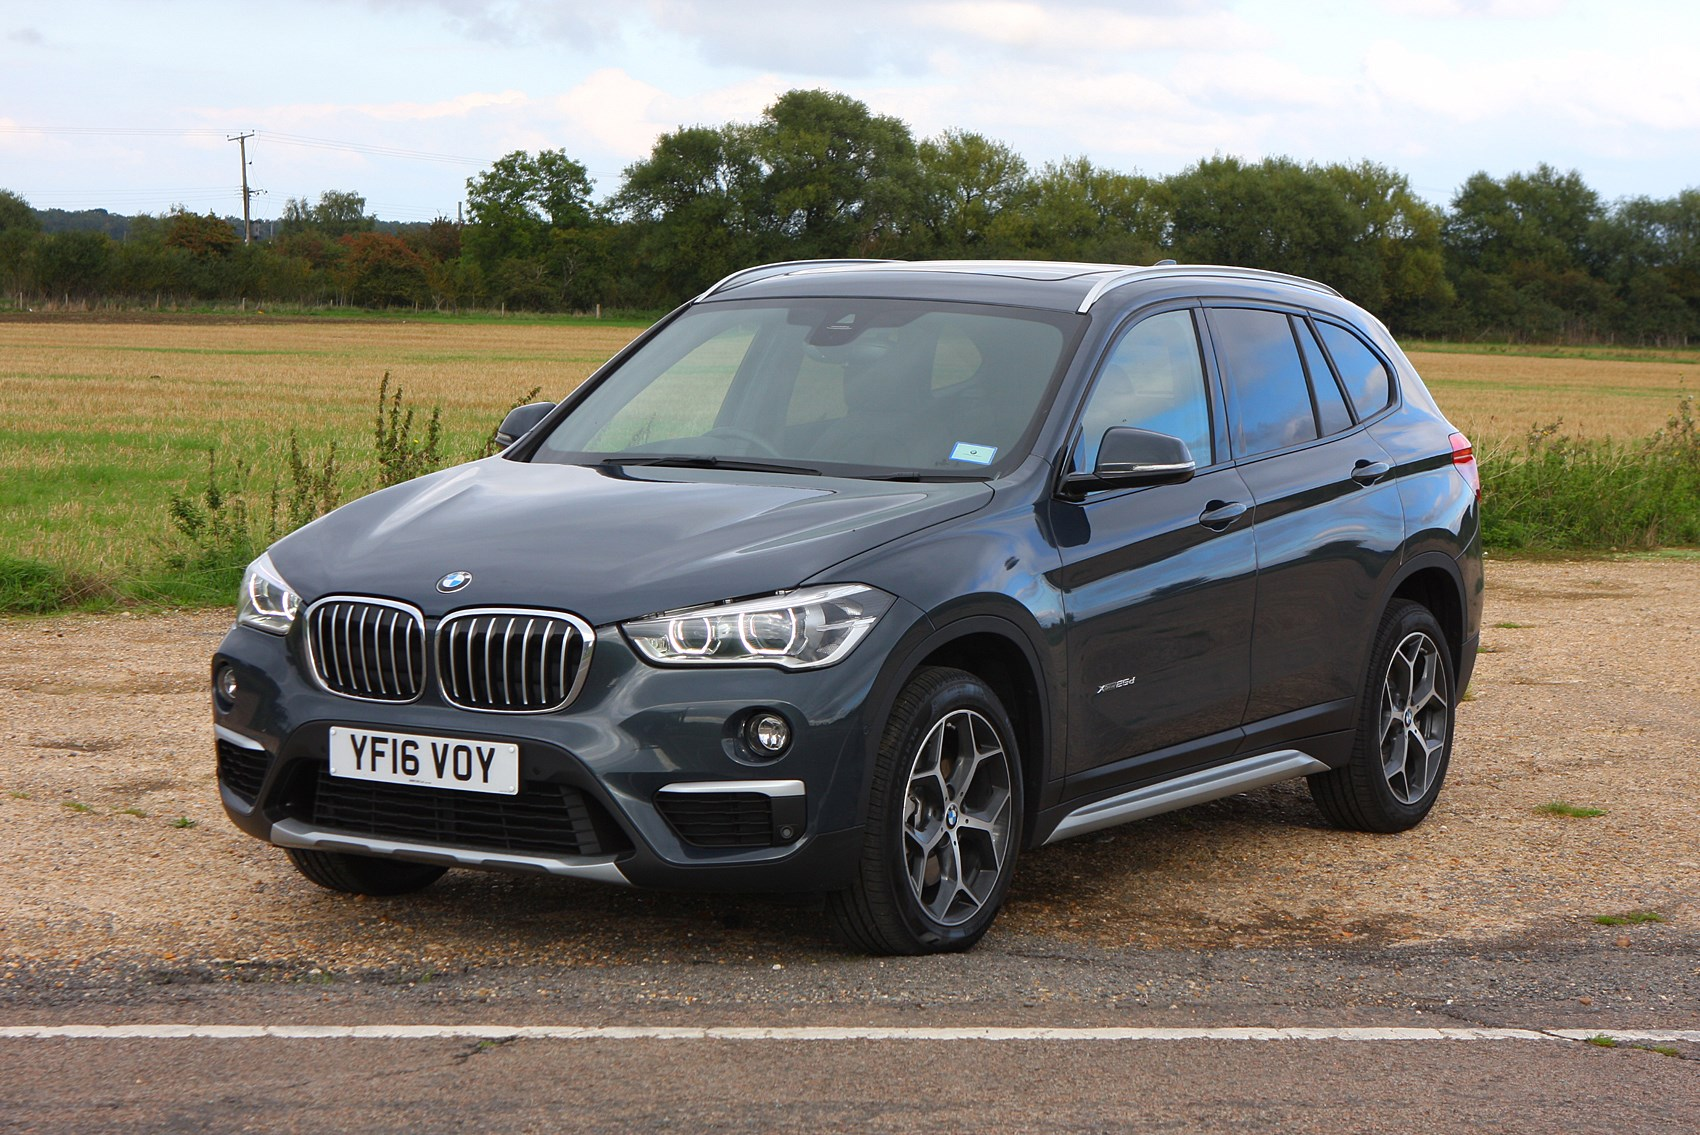 Bmw X1 Suv 2015 Photos Parkers